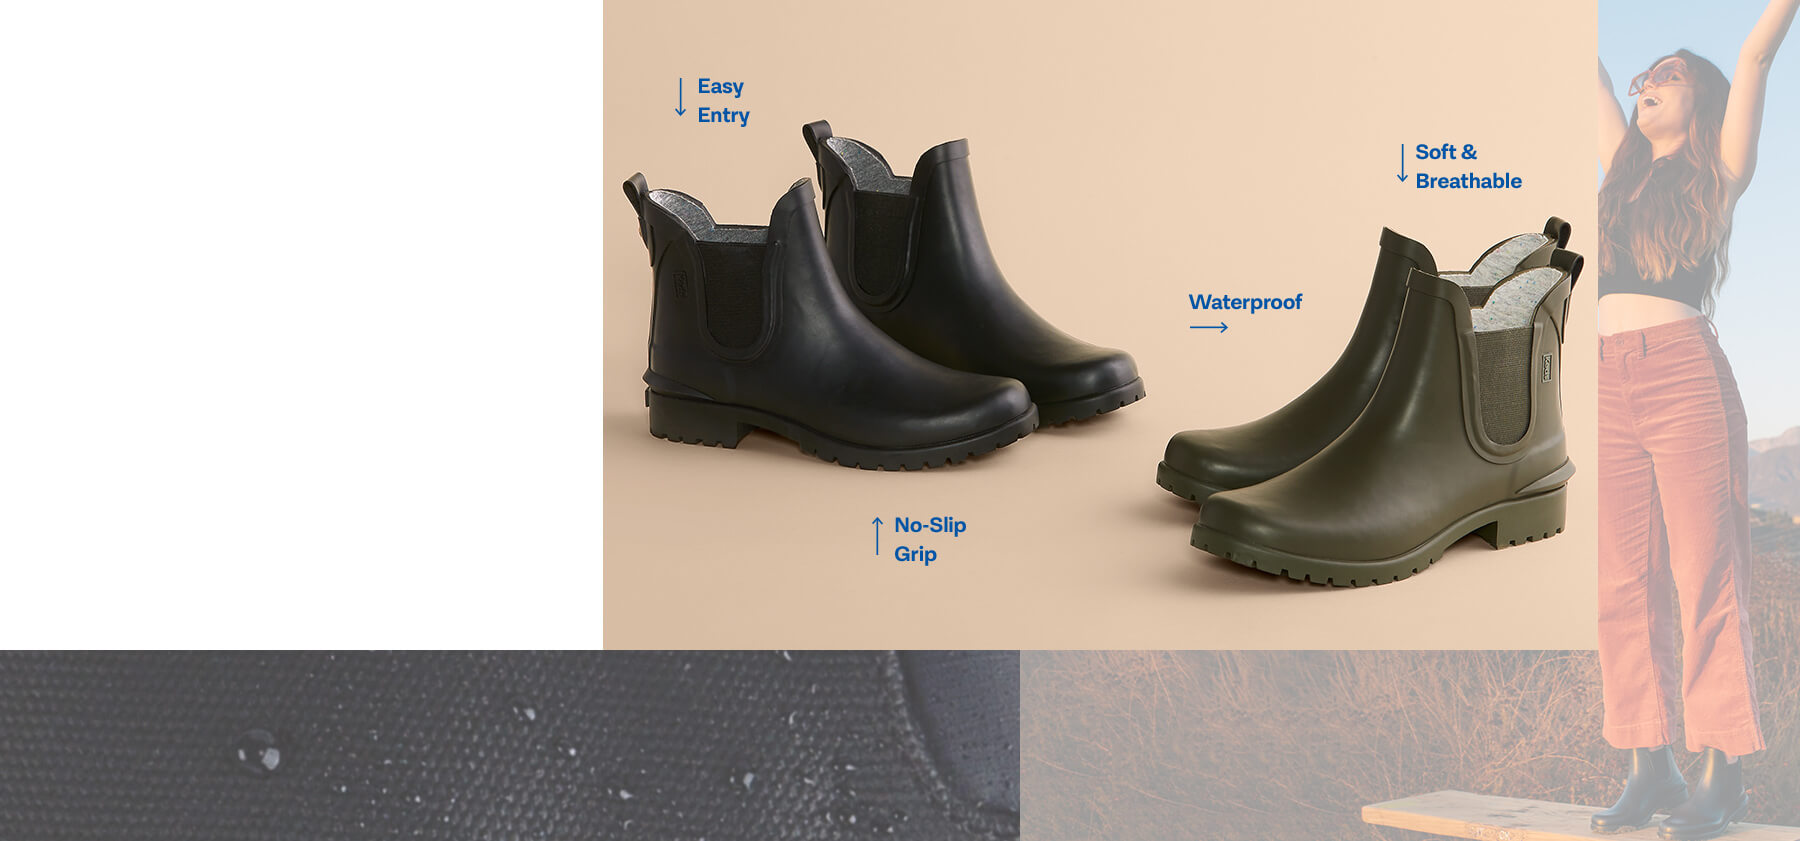 Rown Boots with feature callout text: easy entry, no-slip grip, waterproof, soft & breathable.